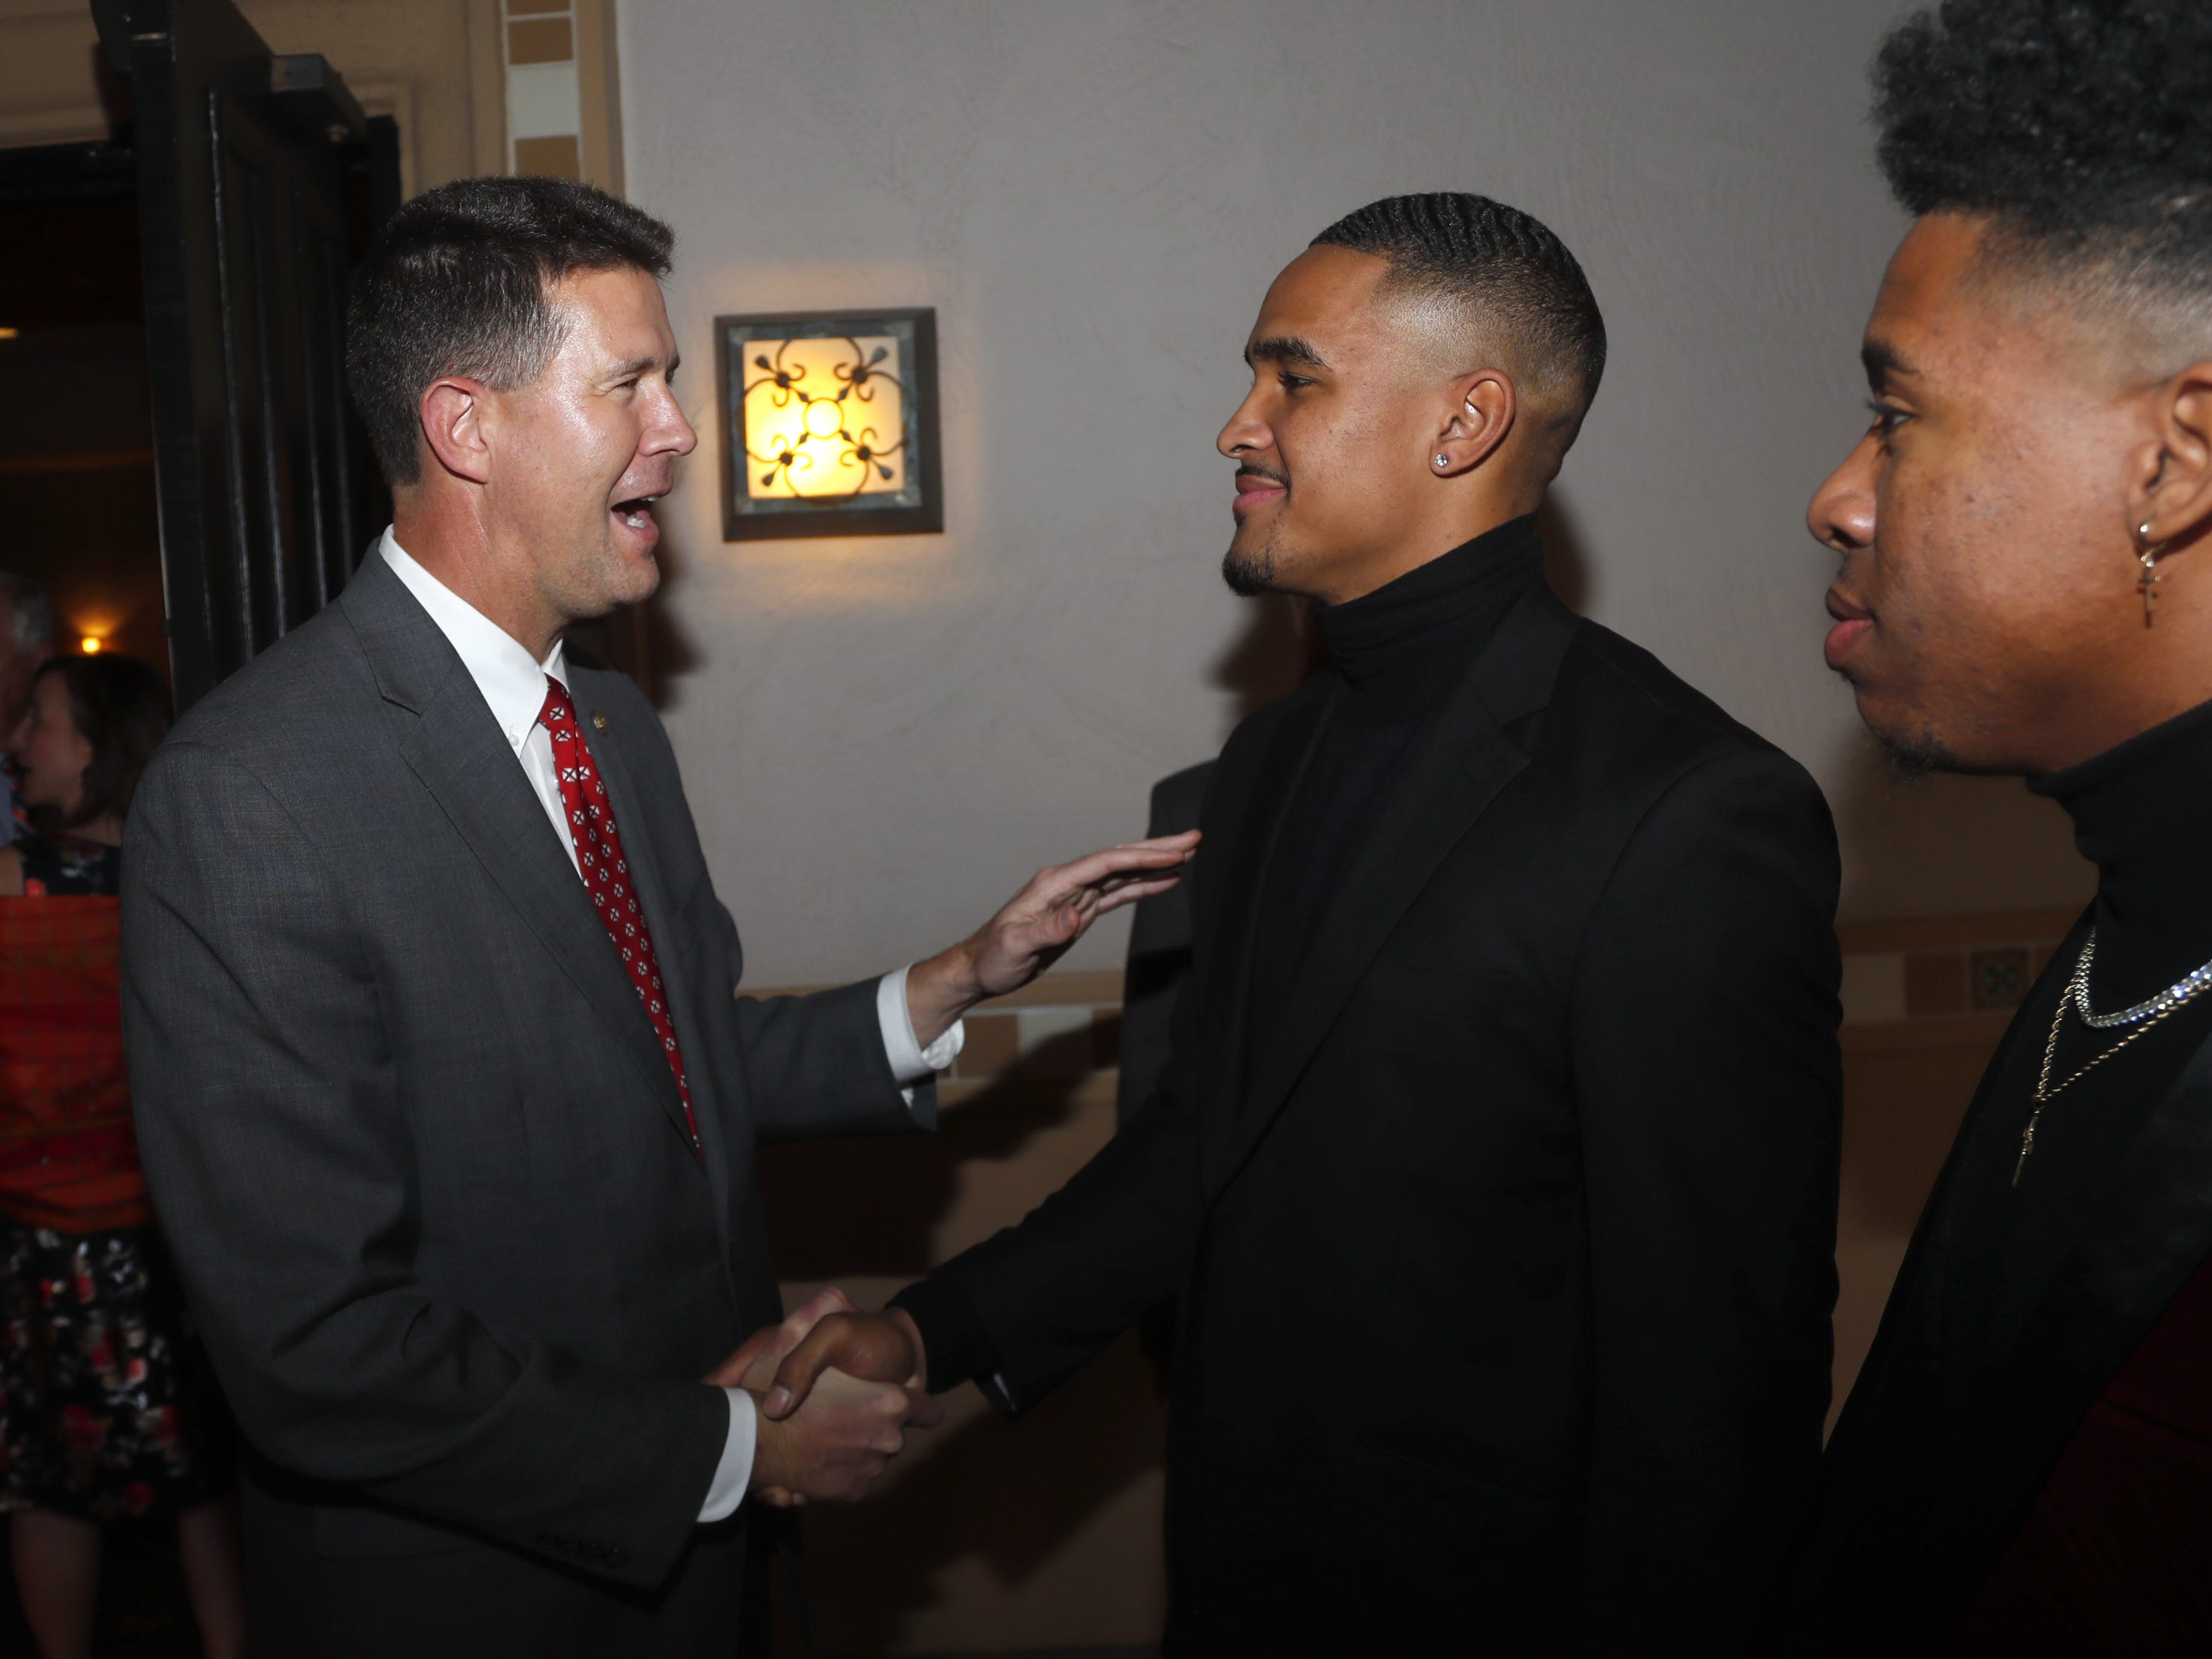 Alabama secretary of State John Merrill (L) shakes hands and speaks with former Alabama quarterback Jalen Hurts before the National Quarterback Club Awards Dinner & Hall of Fame Induction Ceremony The Scottsdale Resort at McCormick Ranch in Scottsdale, Ariz. on January 19, 2019.